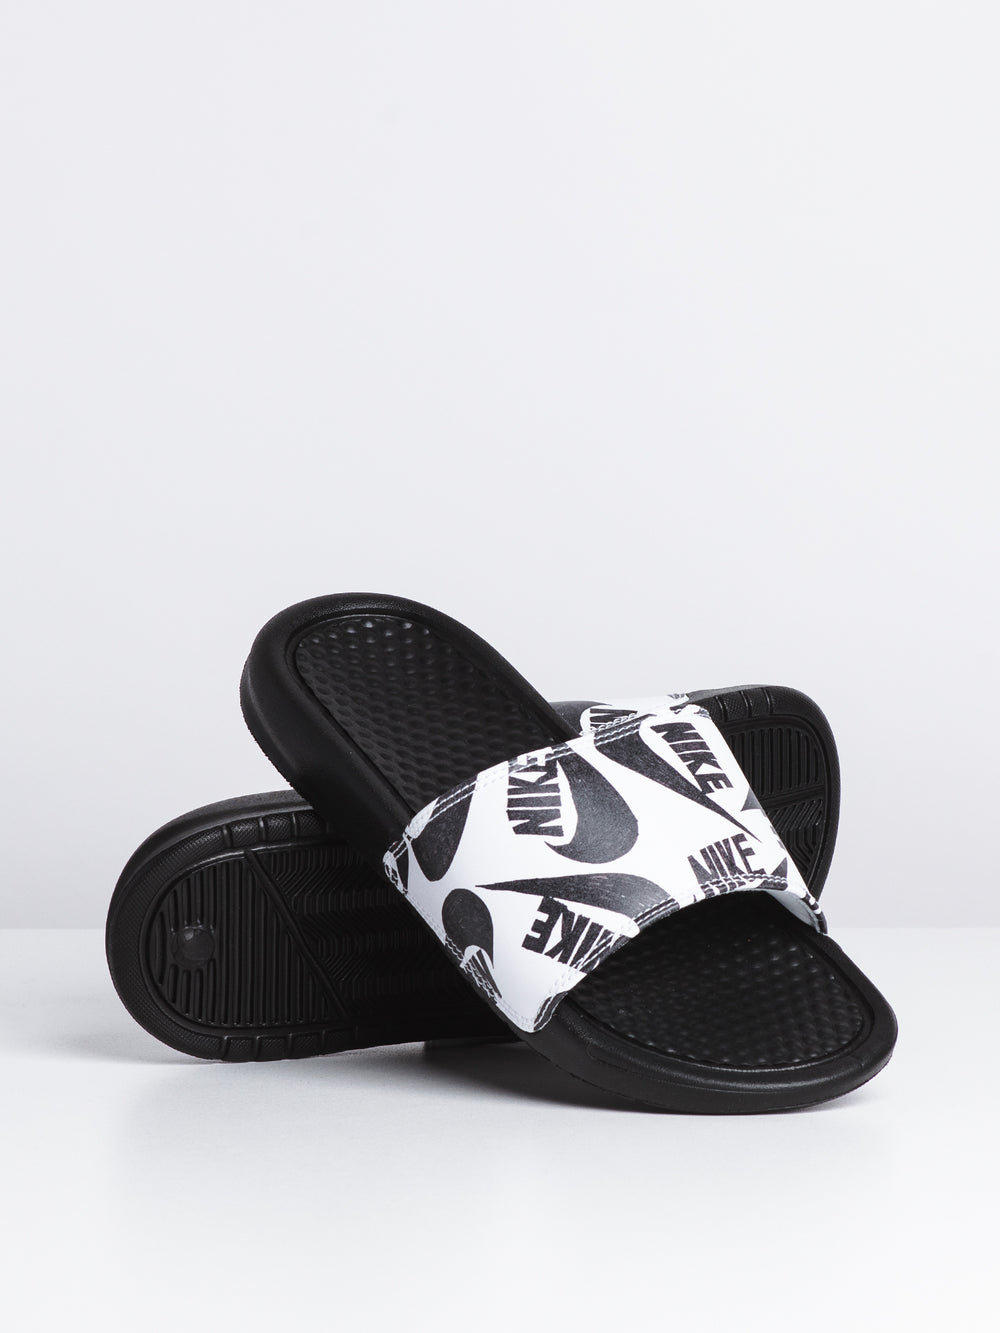 WOMENS BENASSI JDI - BLACK/WHITE